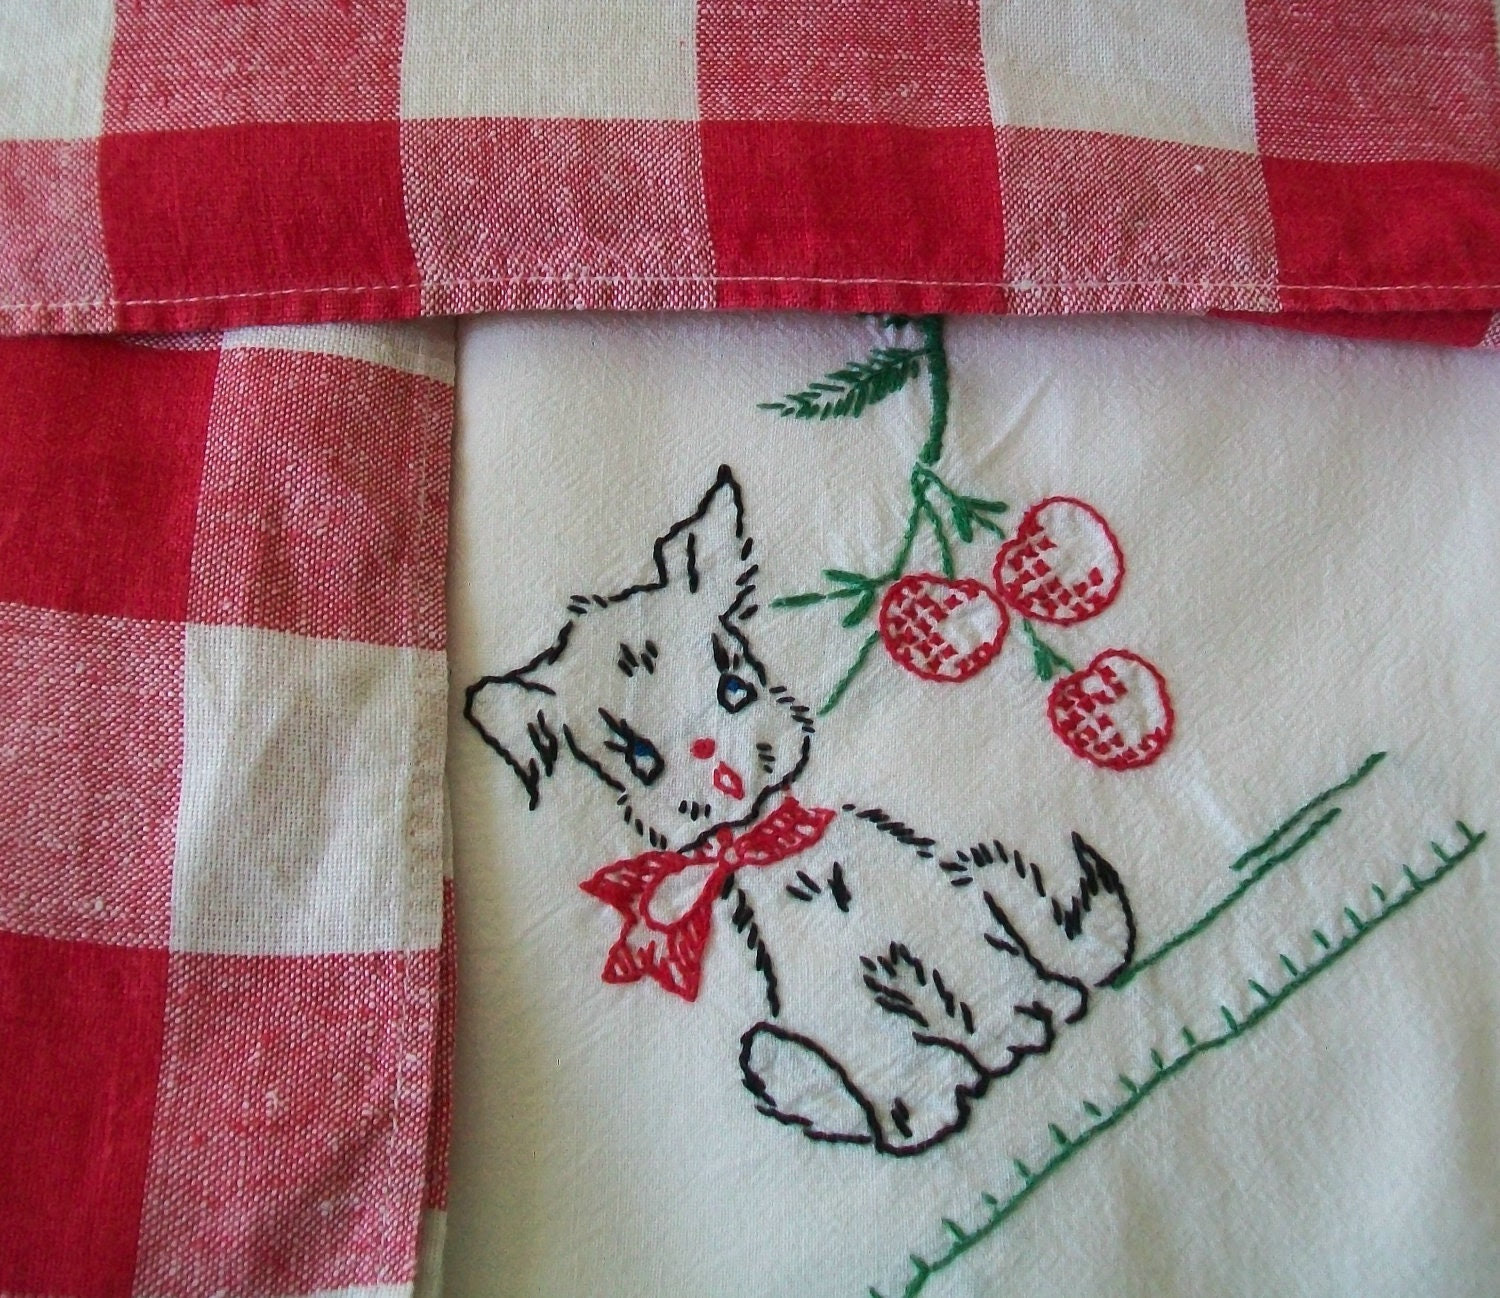 Vintage Scottie dog kitchen towel, 2 red and white checked linen napkins, embroidered, towel, dish towel, embroidery